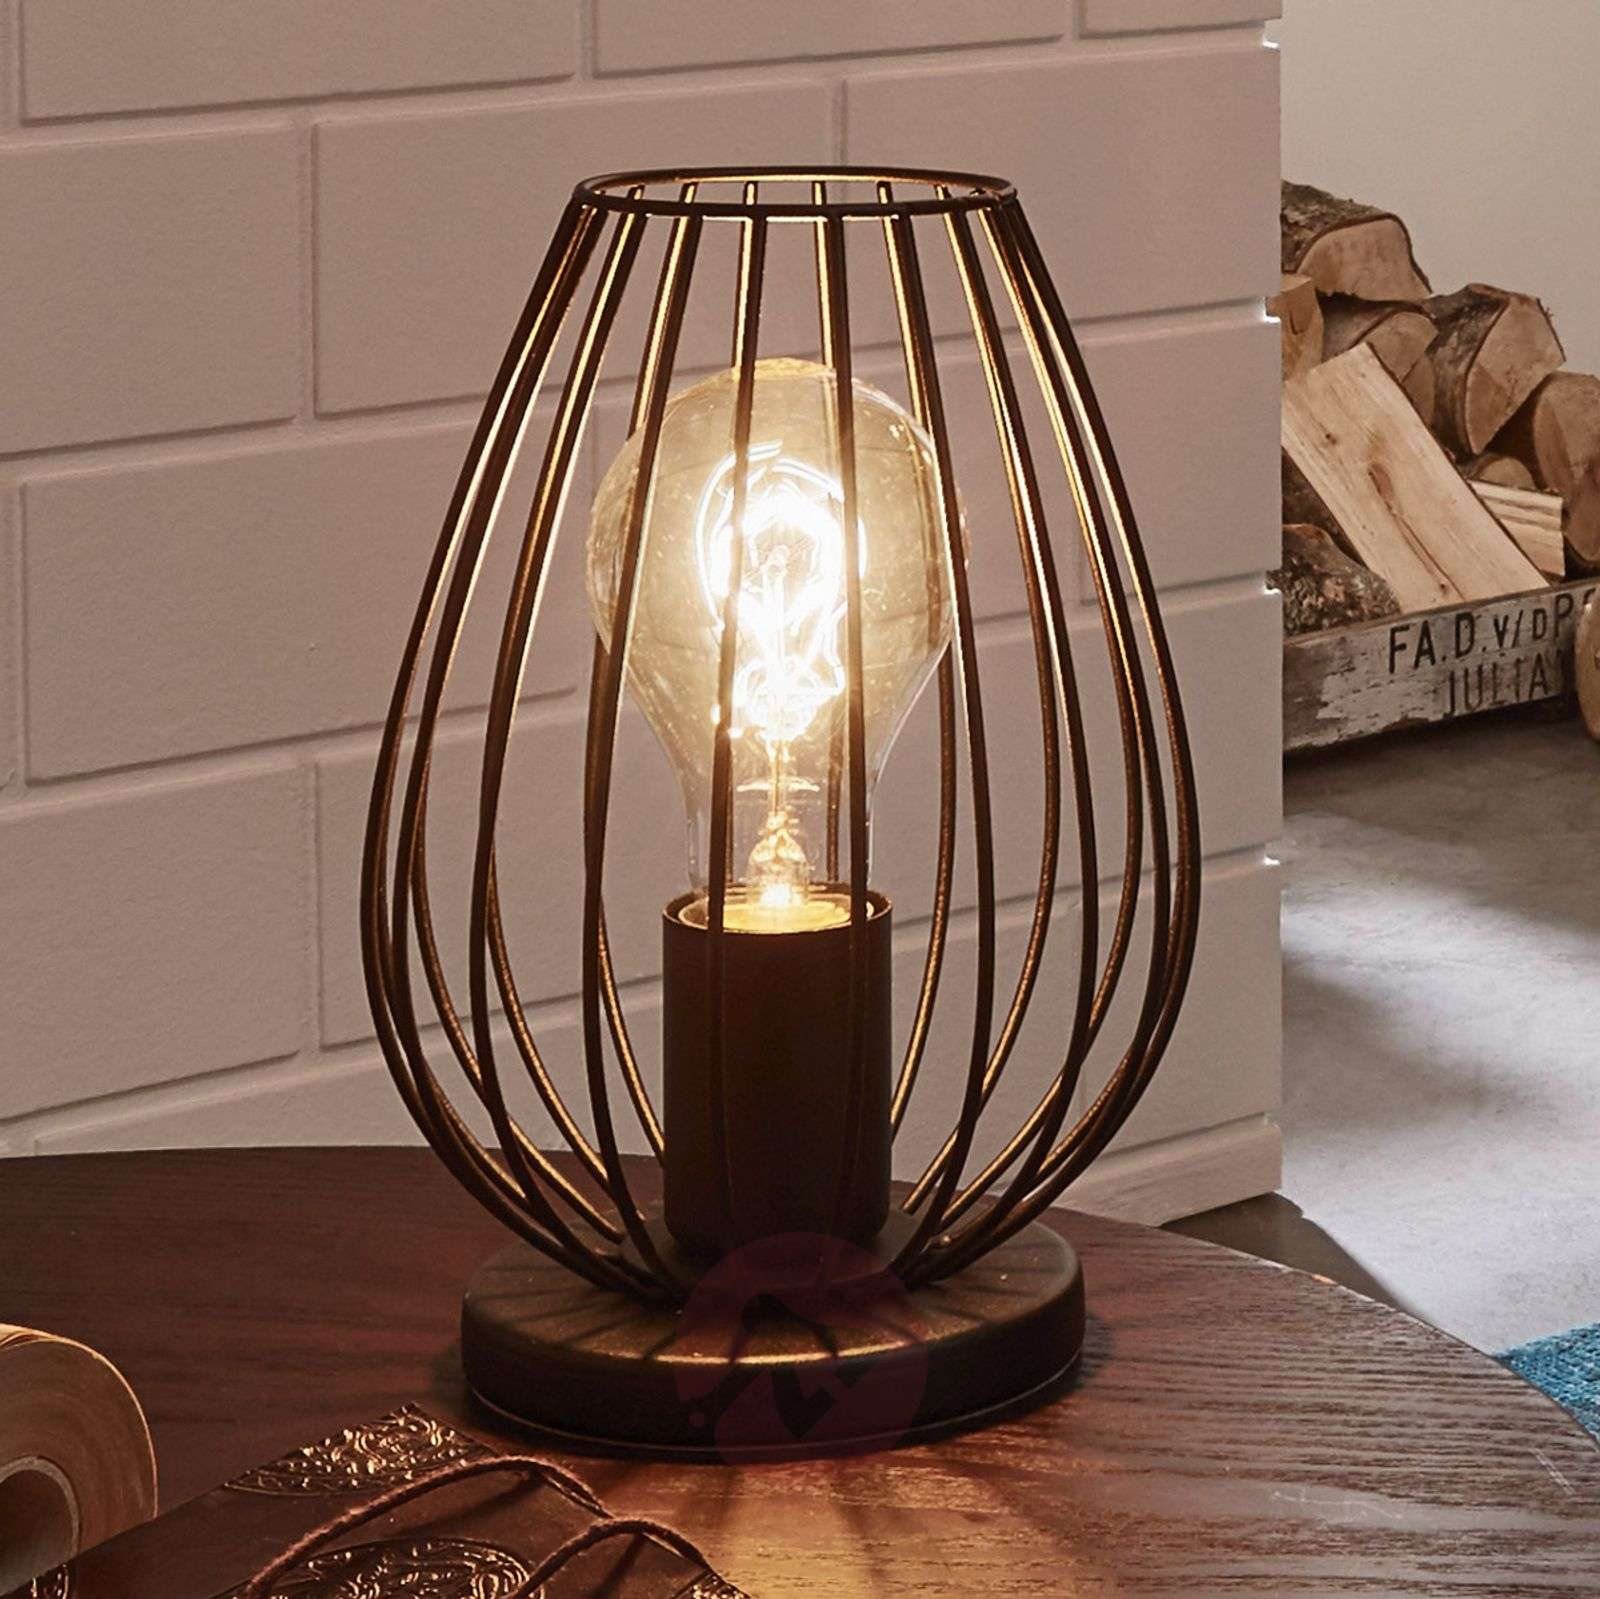 Newtown a table lamp with a vintage look-3031789-01